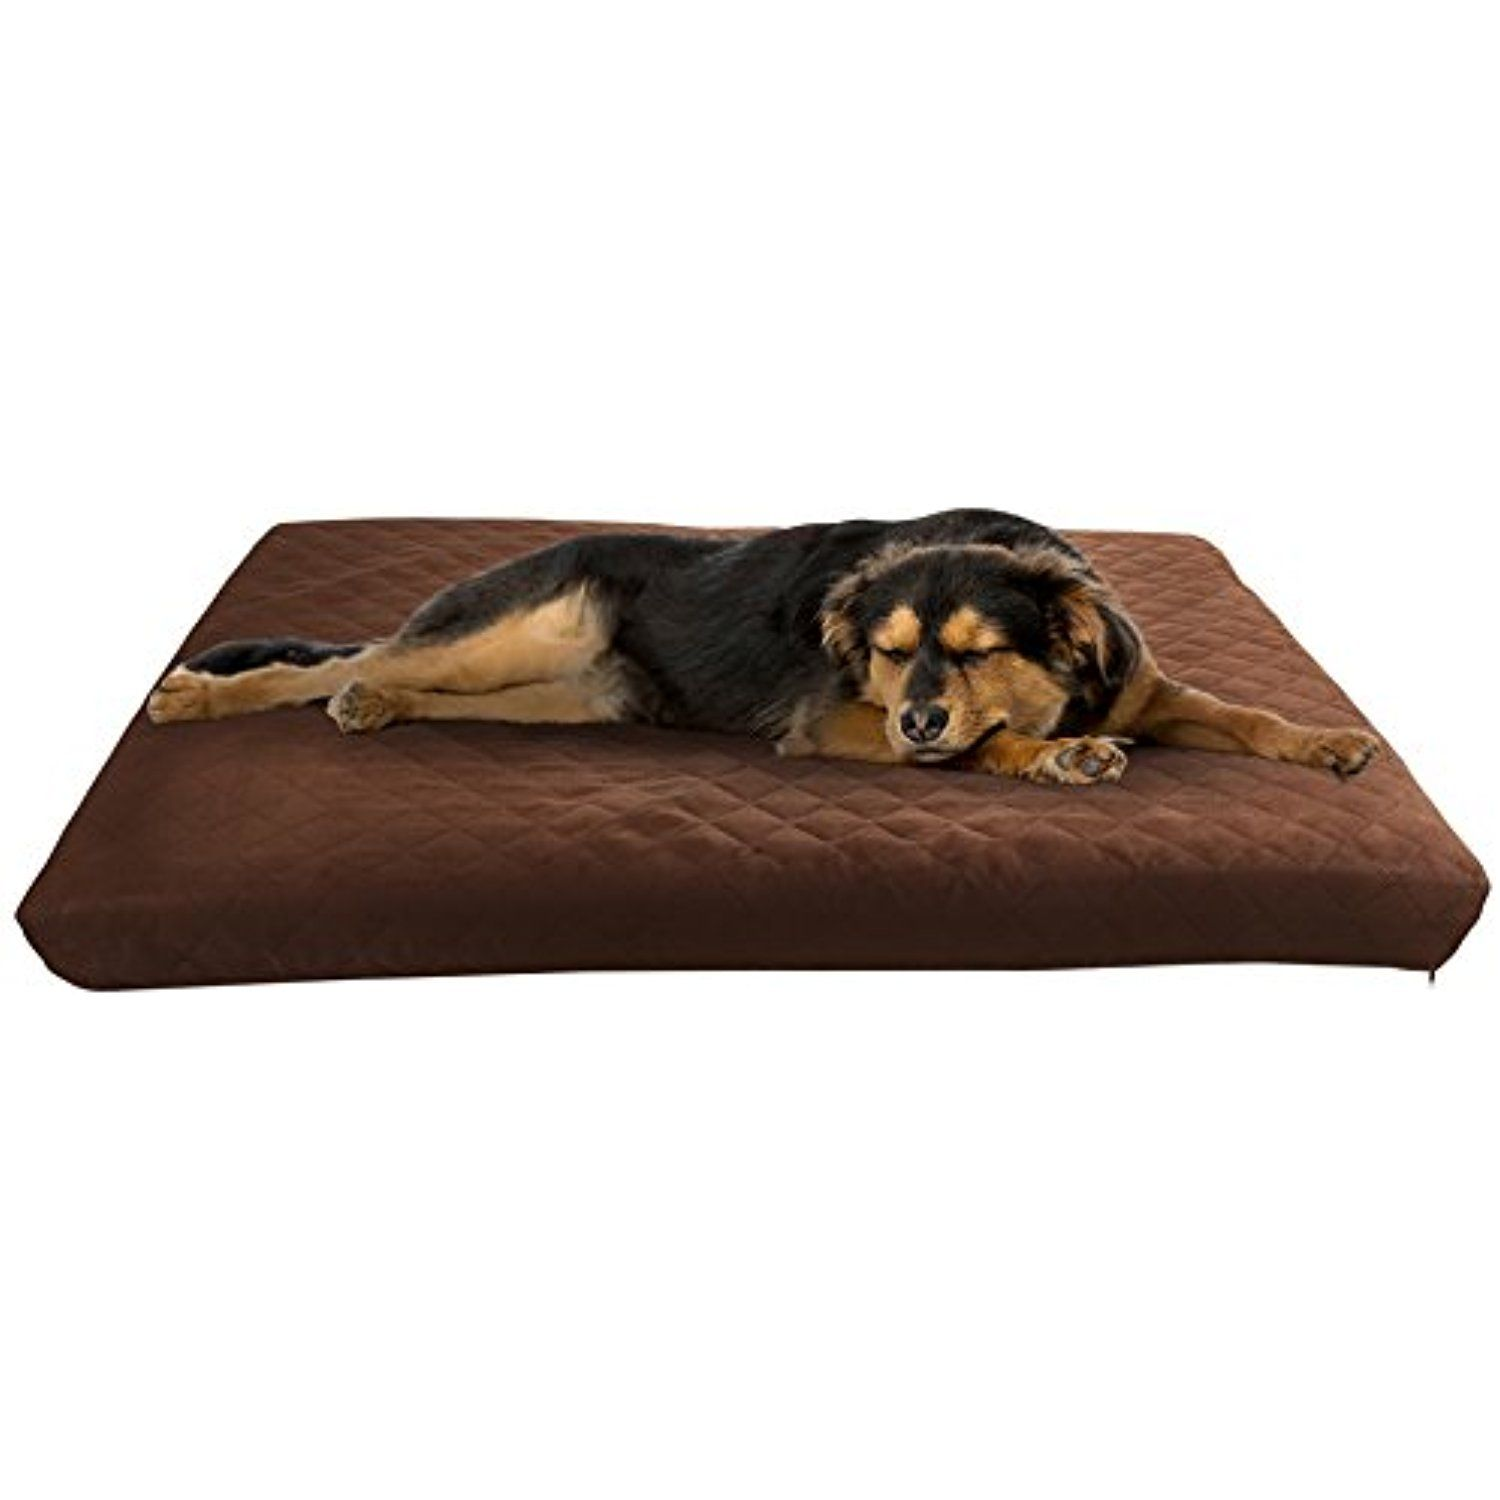 Waterproof Memory Foam Pet Bed Indoor Outdoor Dog Bed With Water Resistant Non Slip Bottom And Removeable Washable Cover  By Petmaker Brown